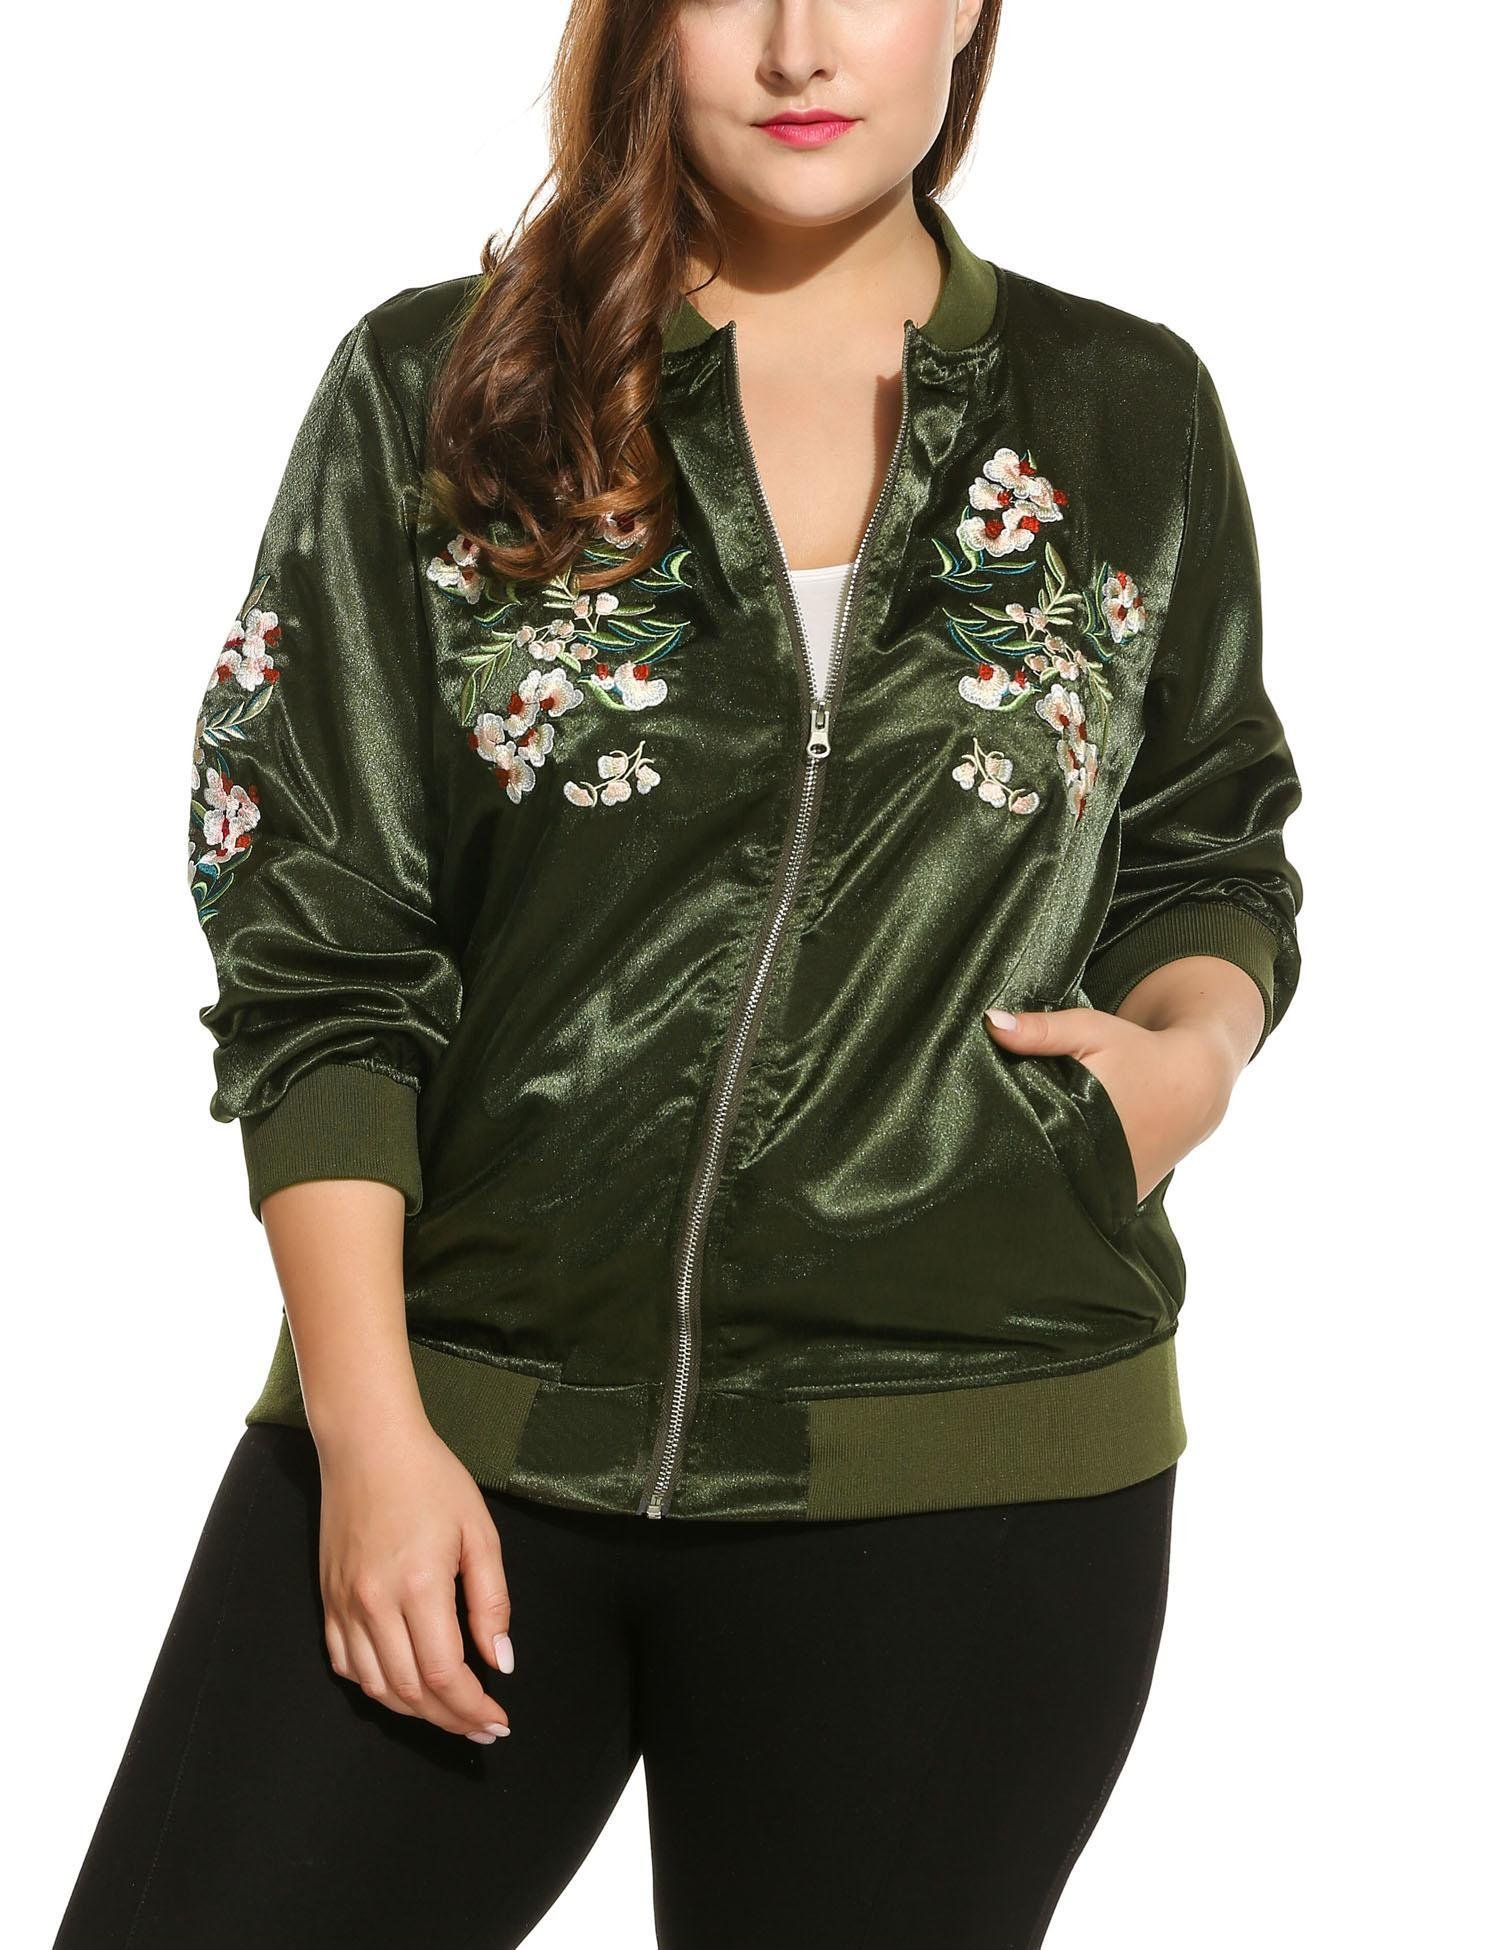 Beyove Women's Plus Size Vintage Embroidered Floral Phenix Casual Bomber Jacket